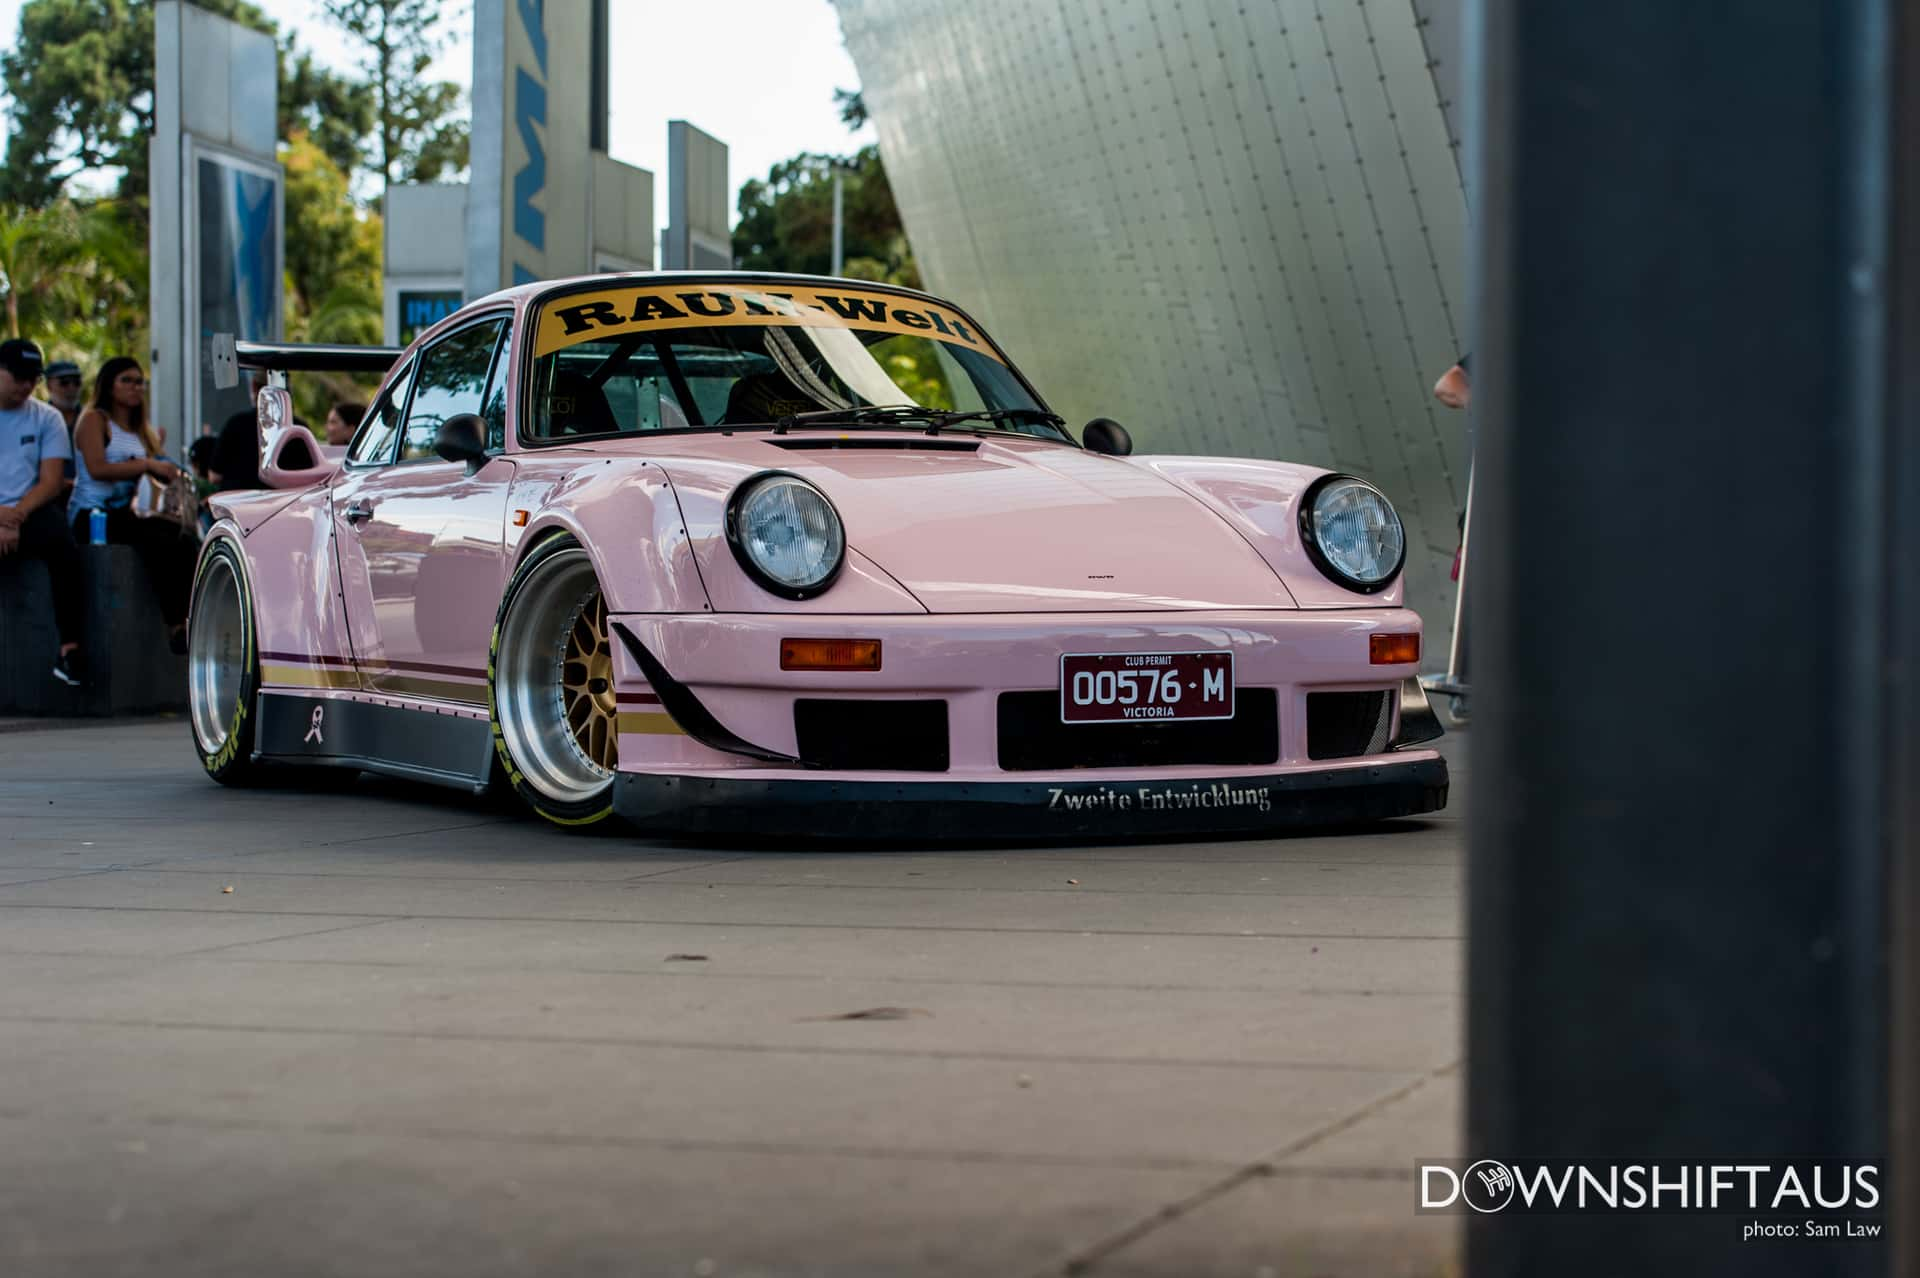 Rwb Film Premiere Downshift